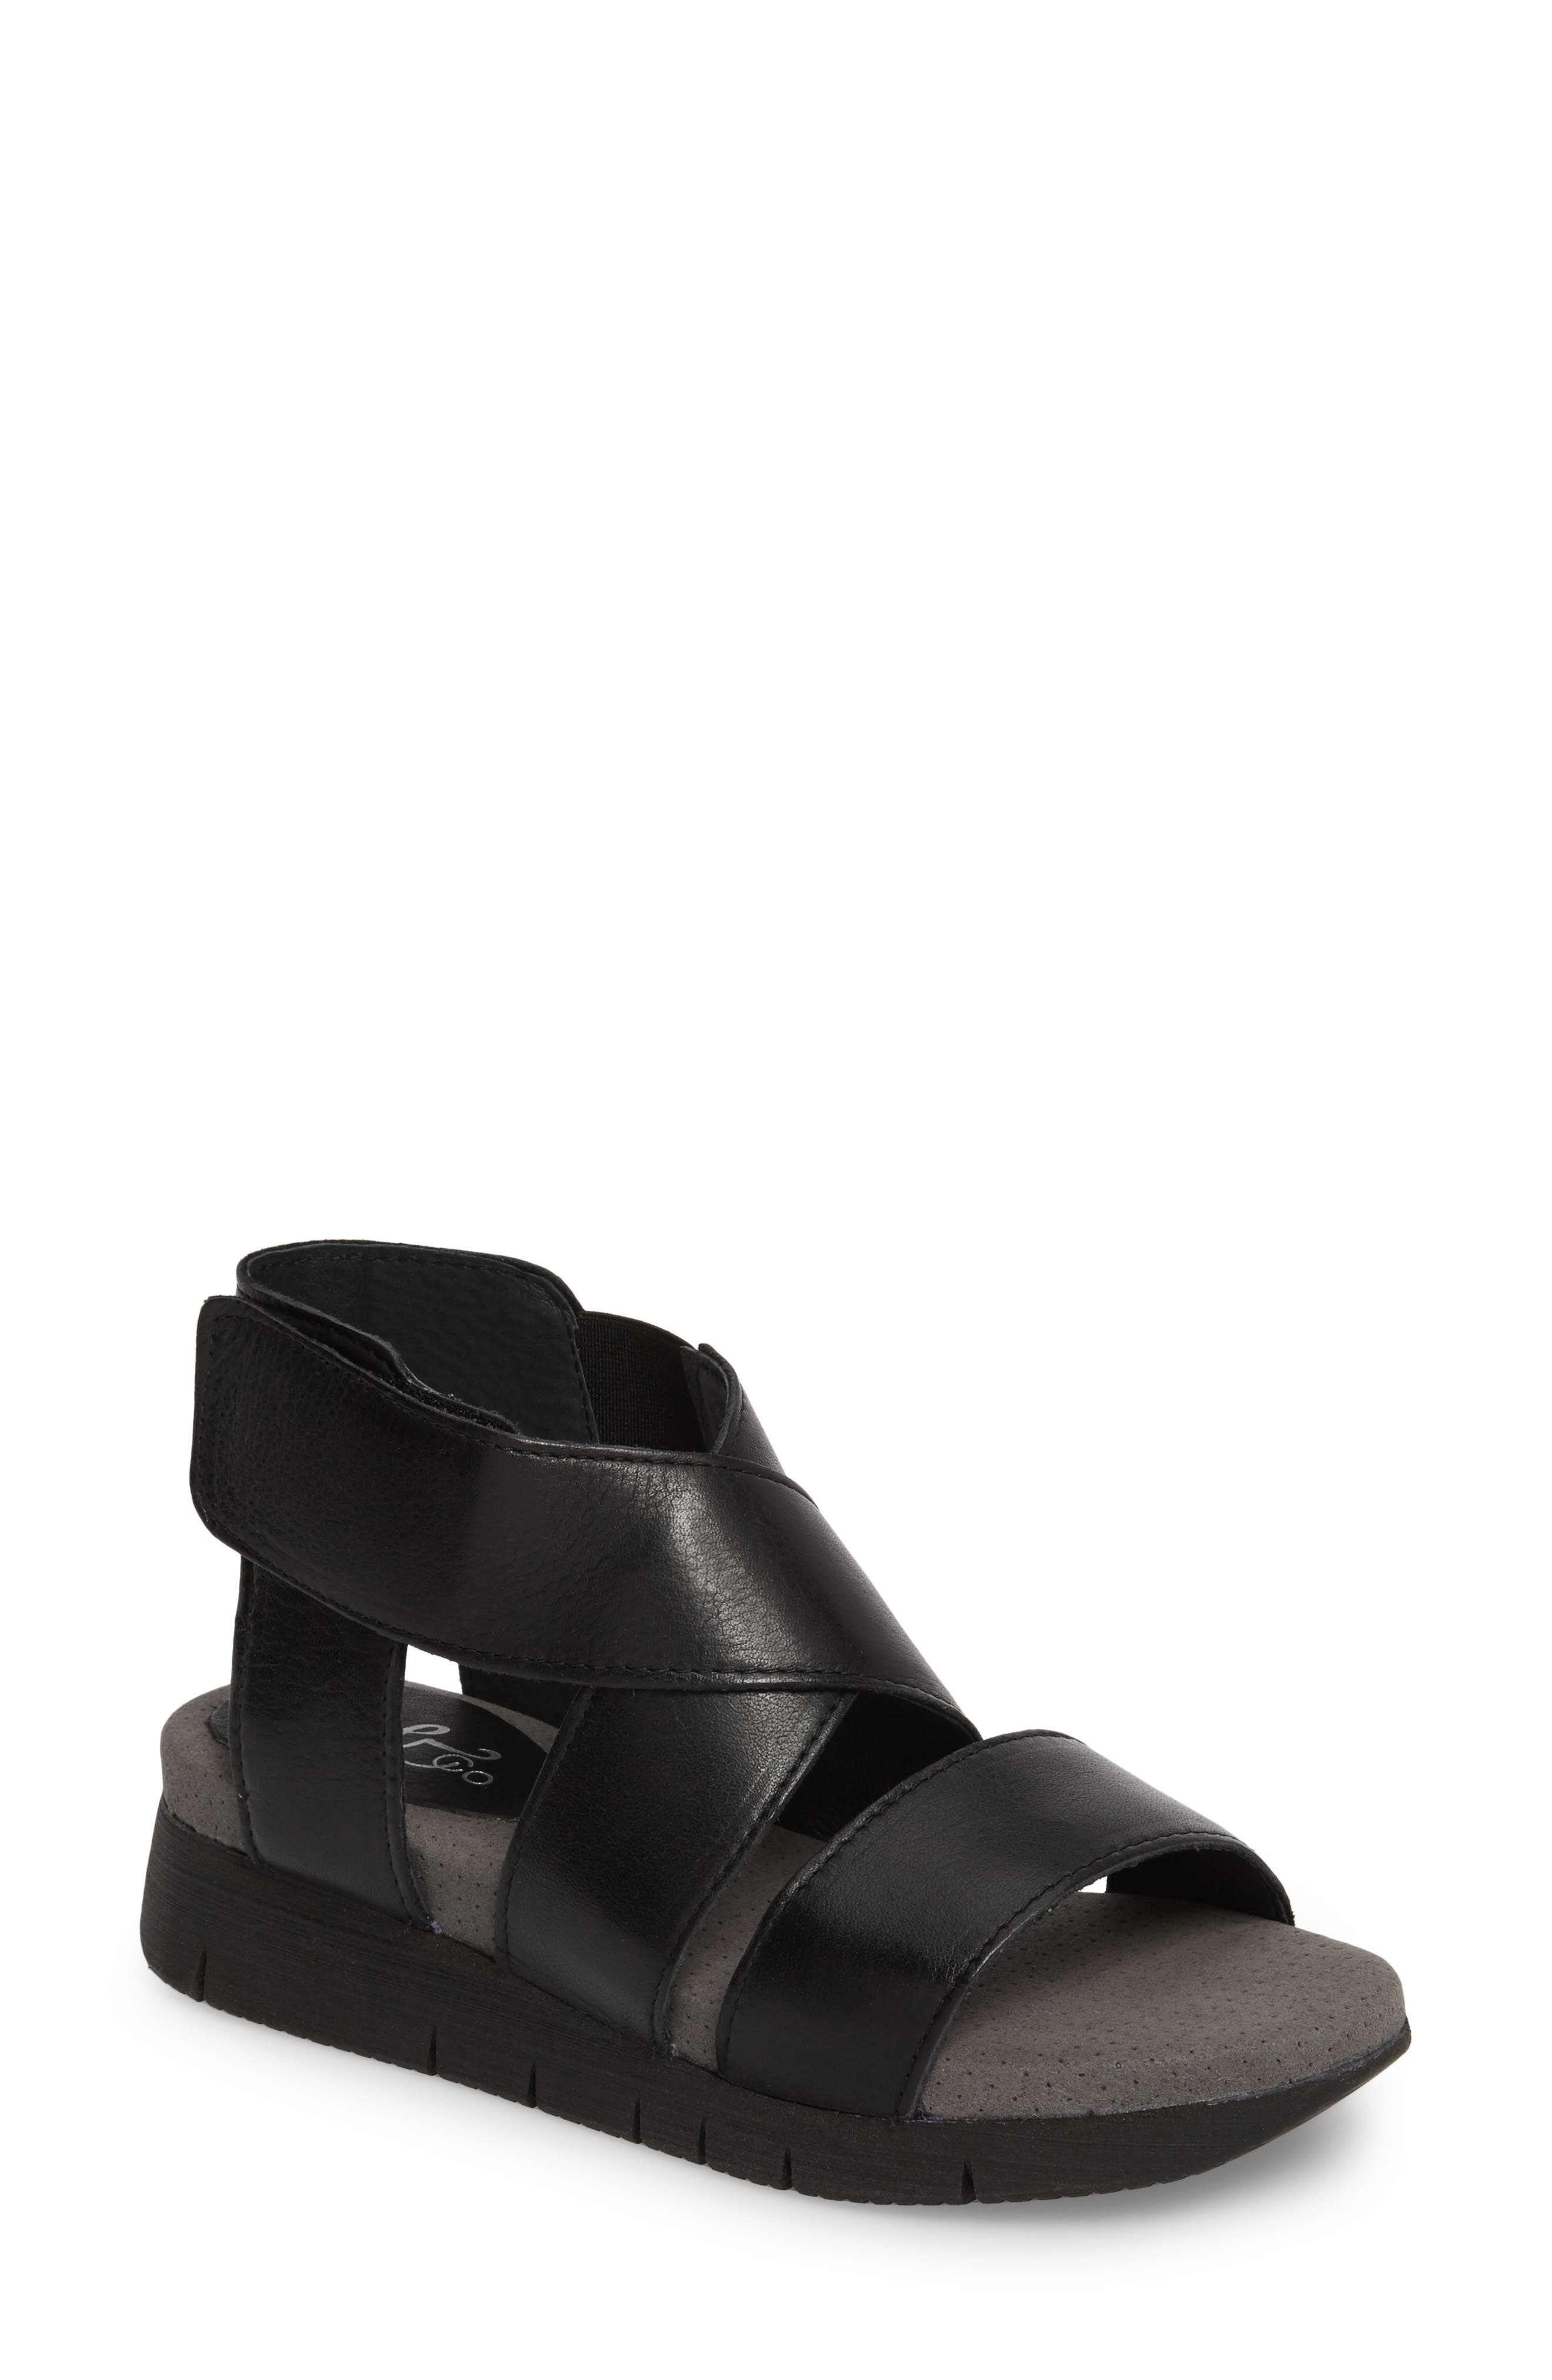 BOS. & CO., Piper Wedge Sandal, Main thumbnail 1, color, BLACK SAUVAGE LEATHER